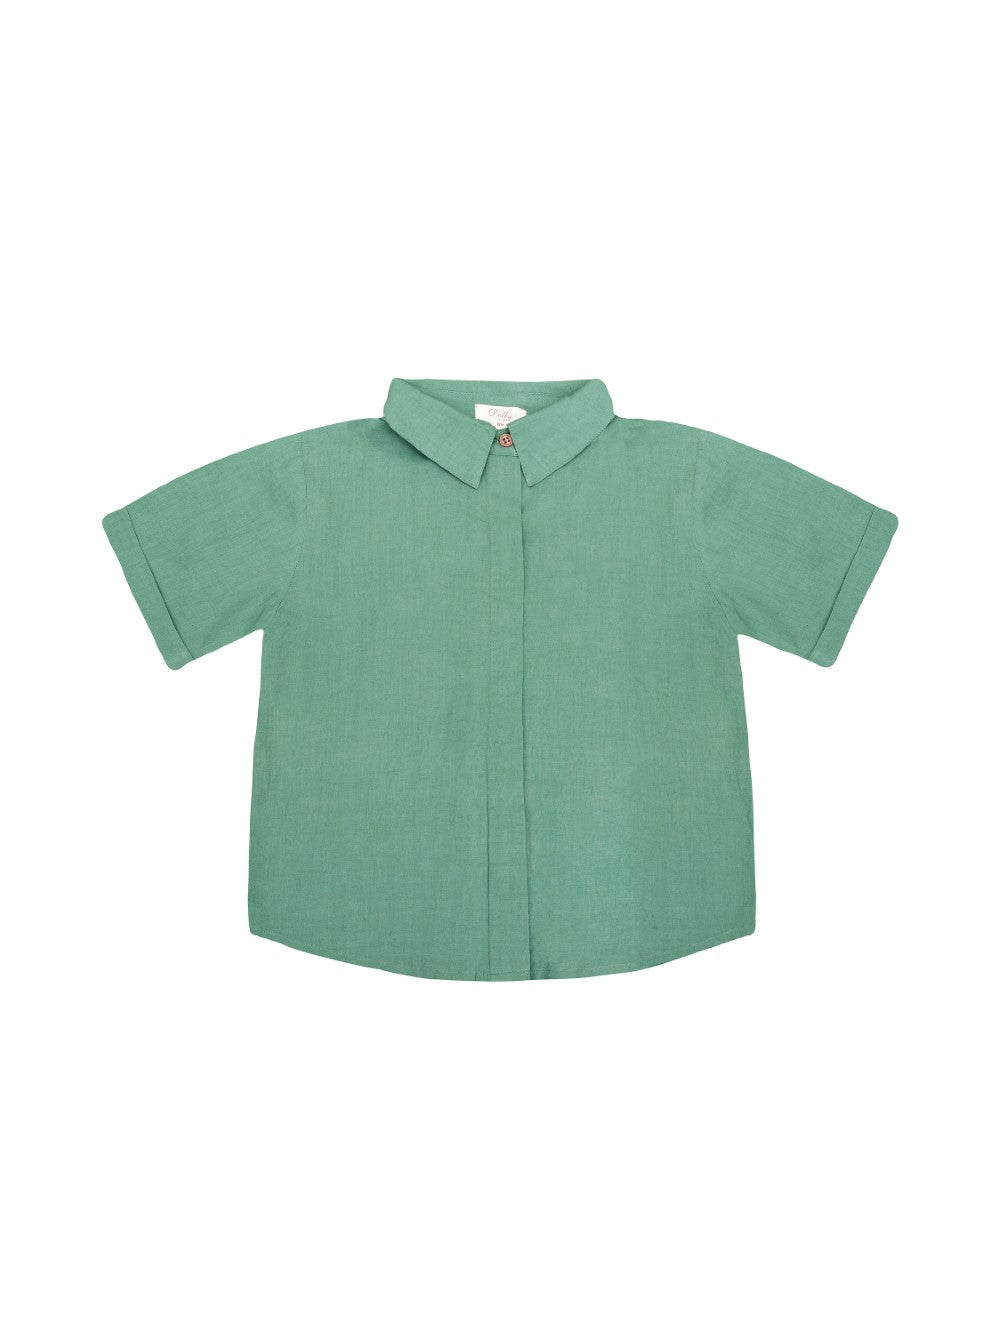 Green Cotton Shirt